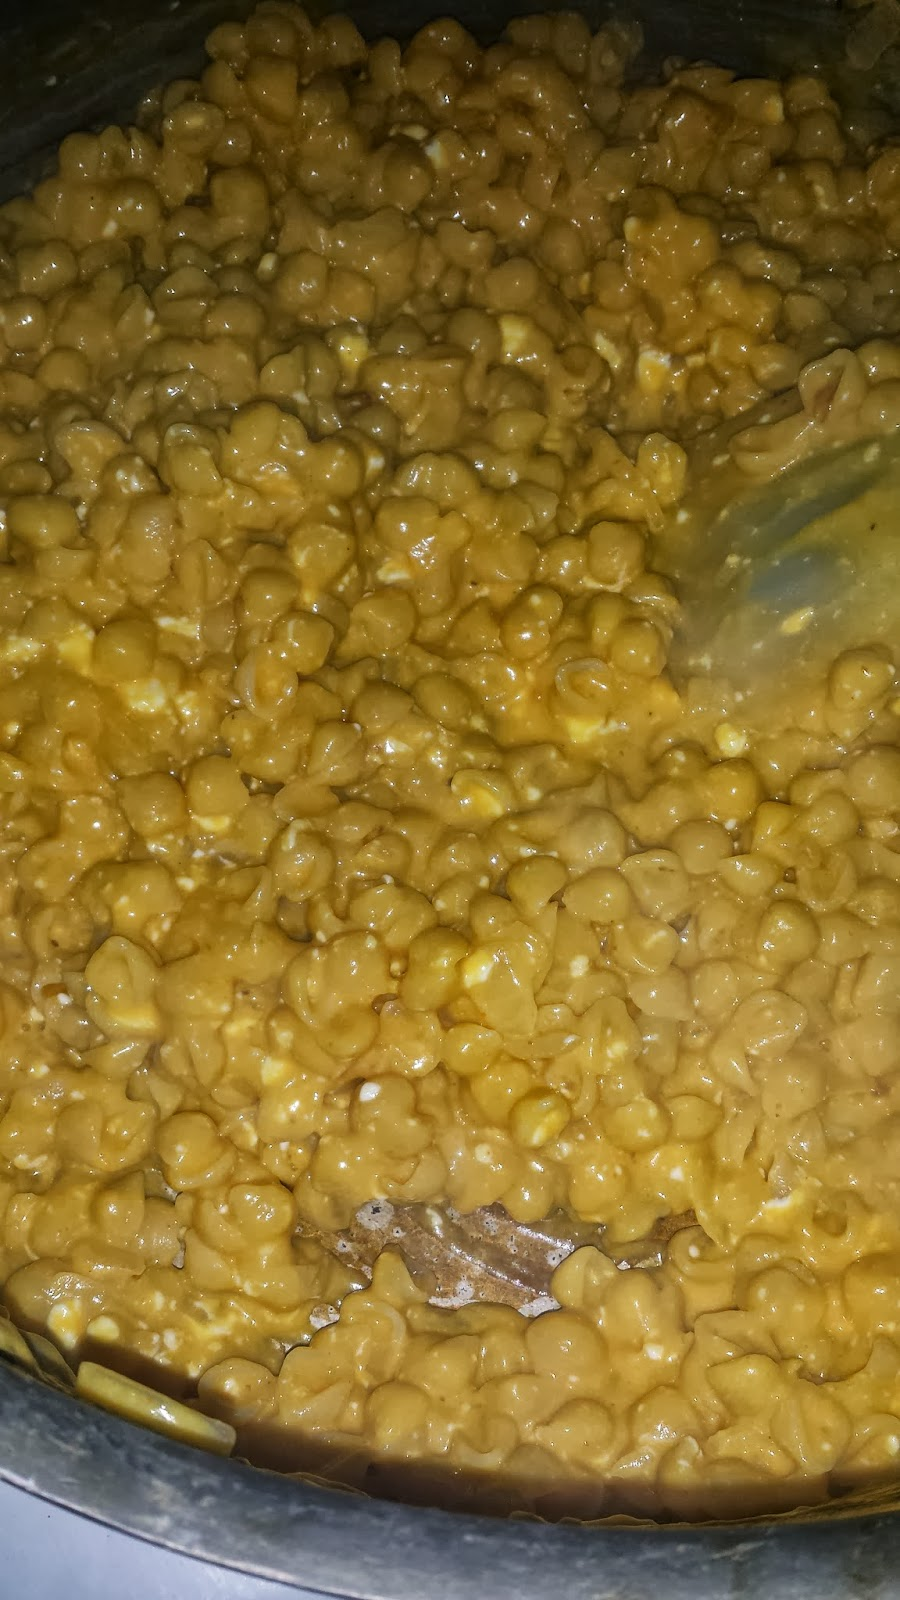 Instant Pot Mac and Cheese takes all of the creamy goodness of homemade mac and cheese and turns it into a meal you can have on the table in minutes!. Elbow macaroni and seasonings are cooked in the Instant Pot until perfectly tender. We add in the rest of the sauce ingredients (and CHEESE.